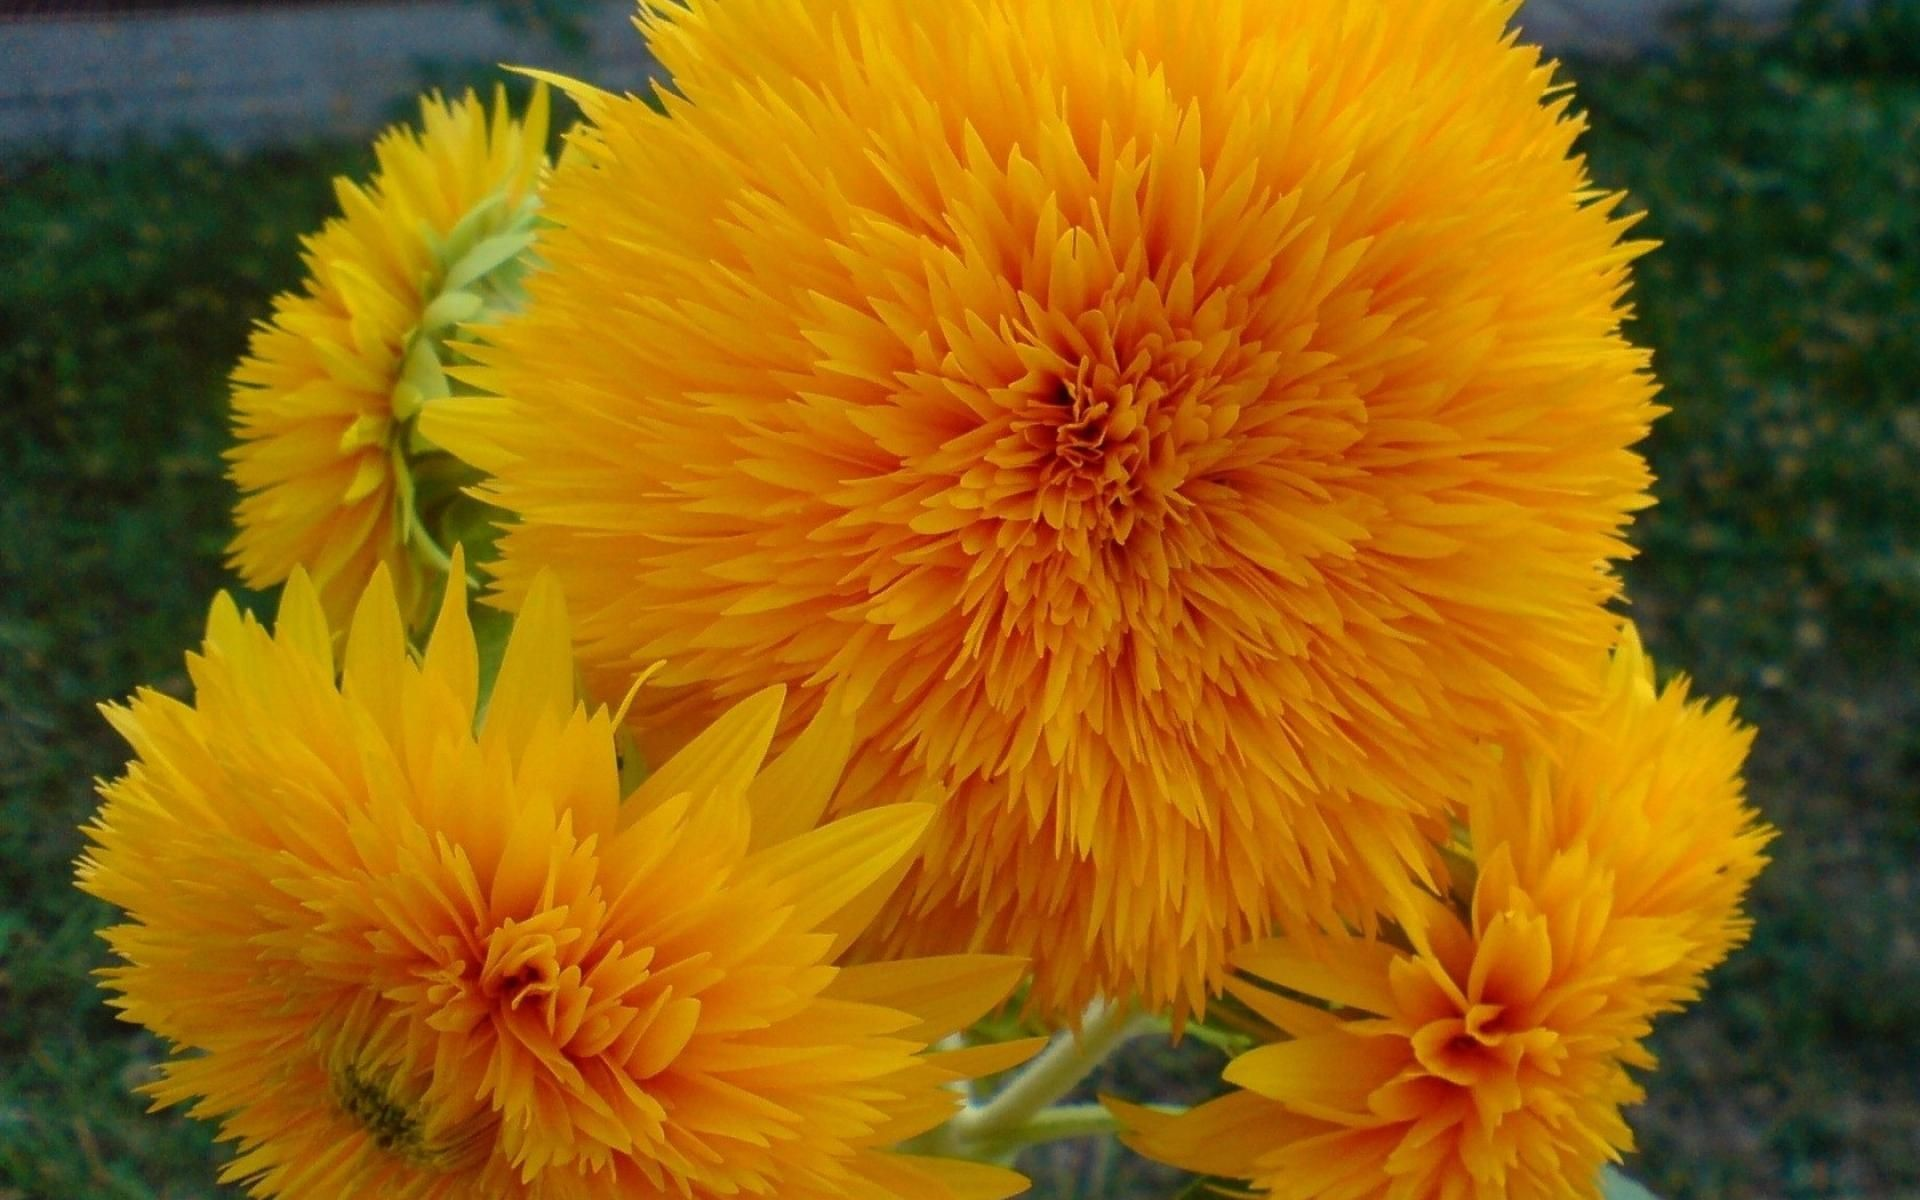 1920x1200 Nature Flowers Yellow Orange Colors Hd Wallpaper | HD Flowers Wallpaper  Free Download ...